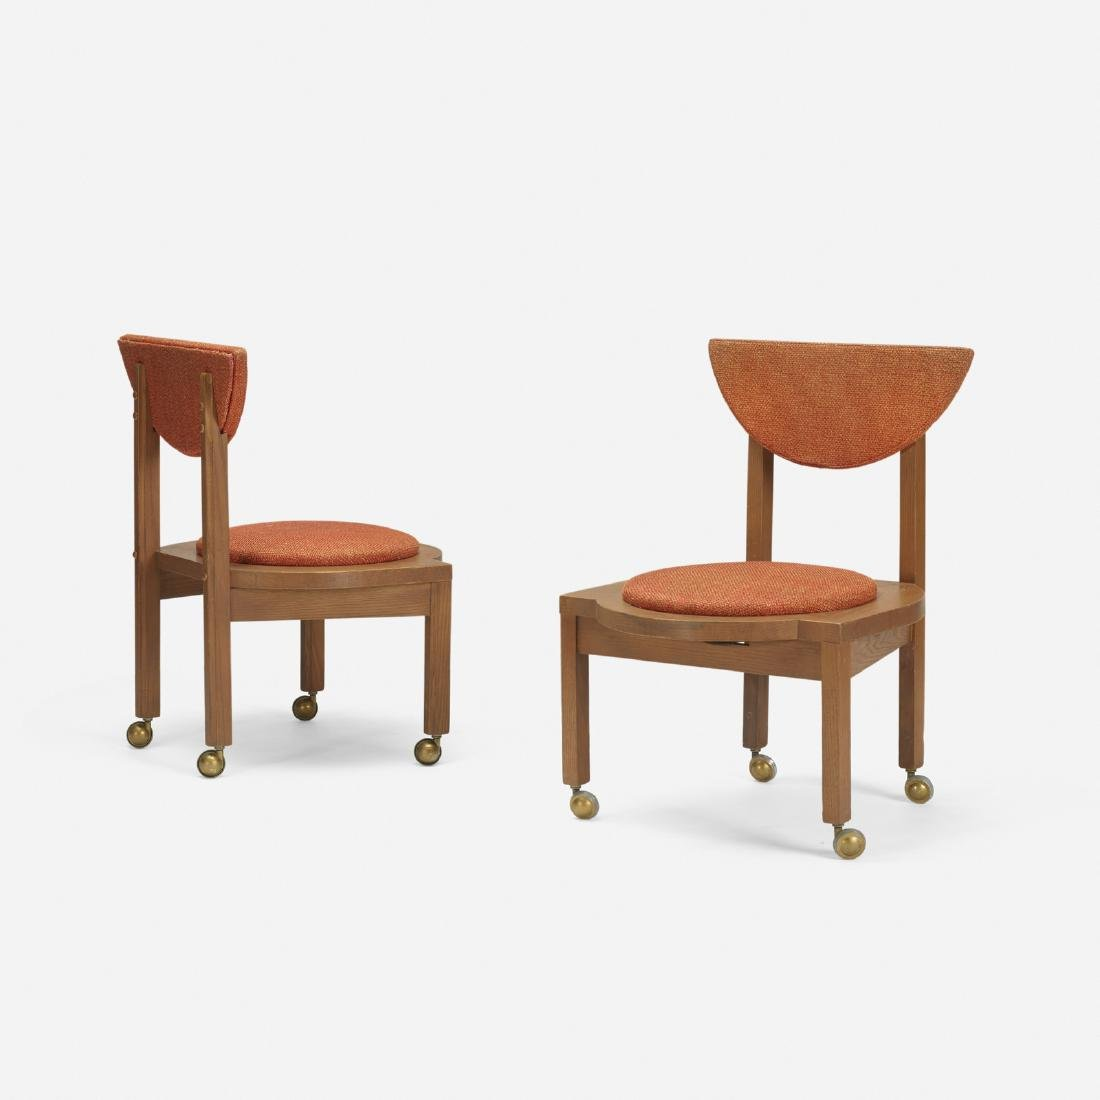 Frank Lloyd Wright, dining chairs, Riverview Terrace